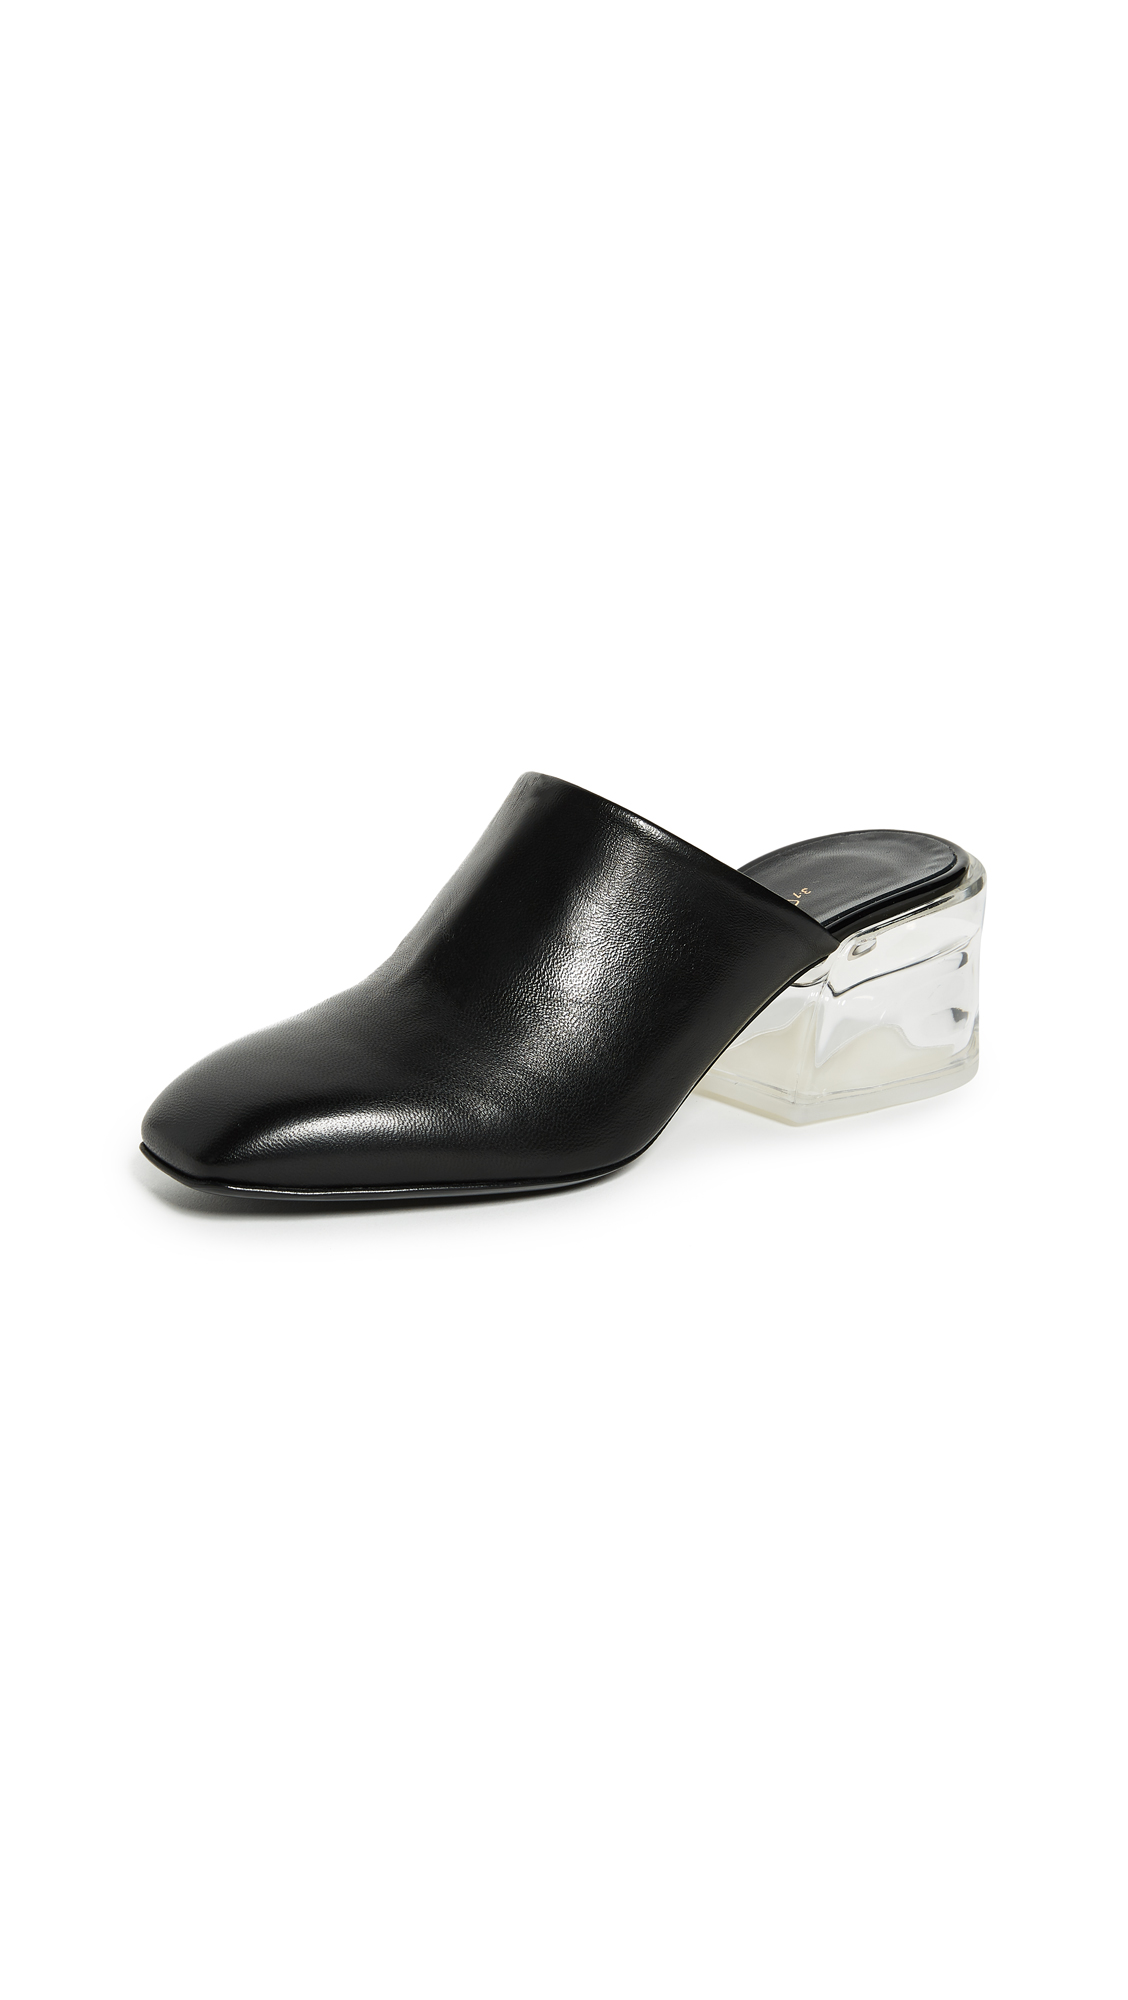 3.1 Phillip Lim Closed Toe Mules - Black